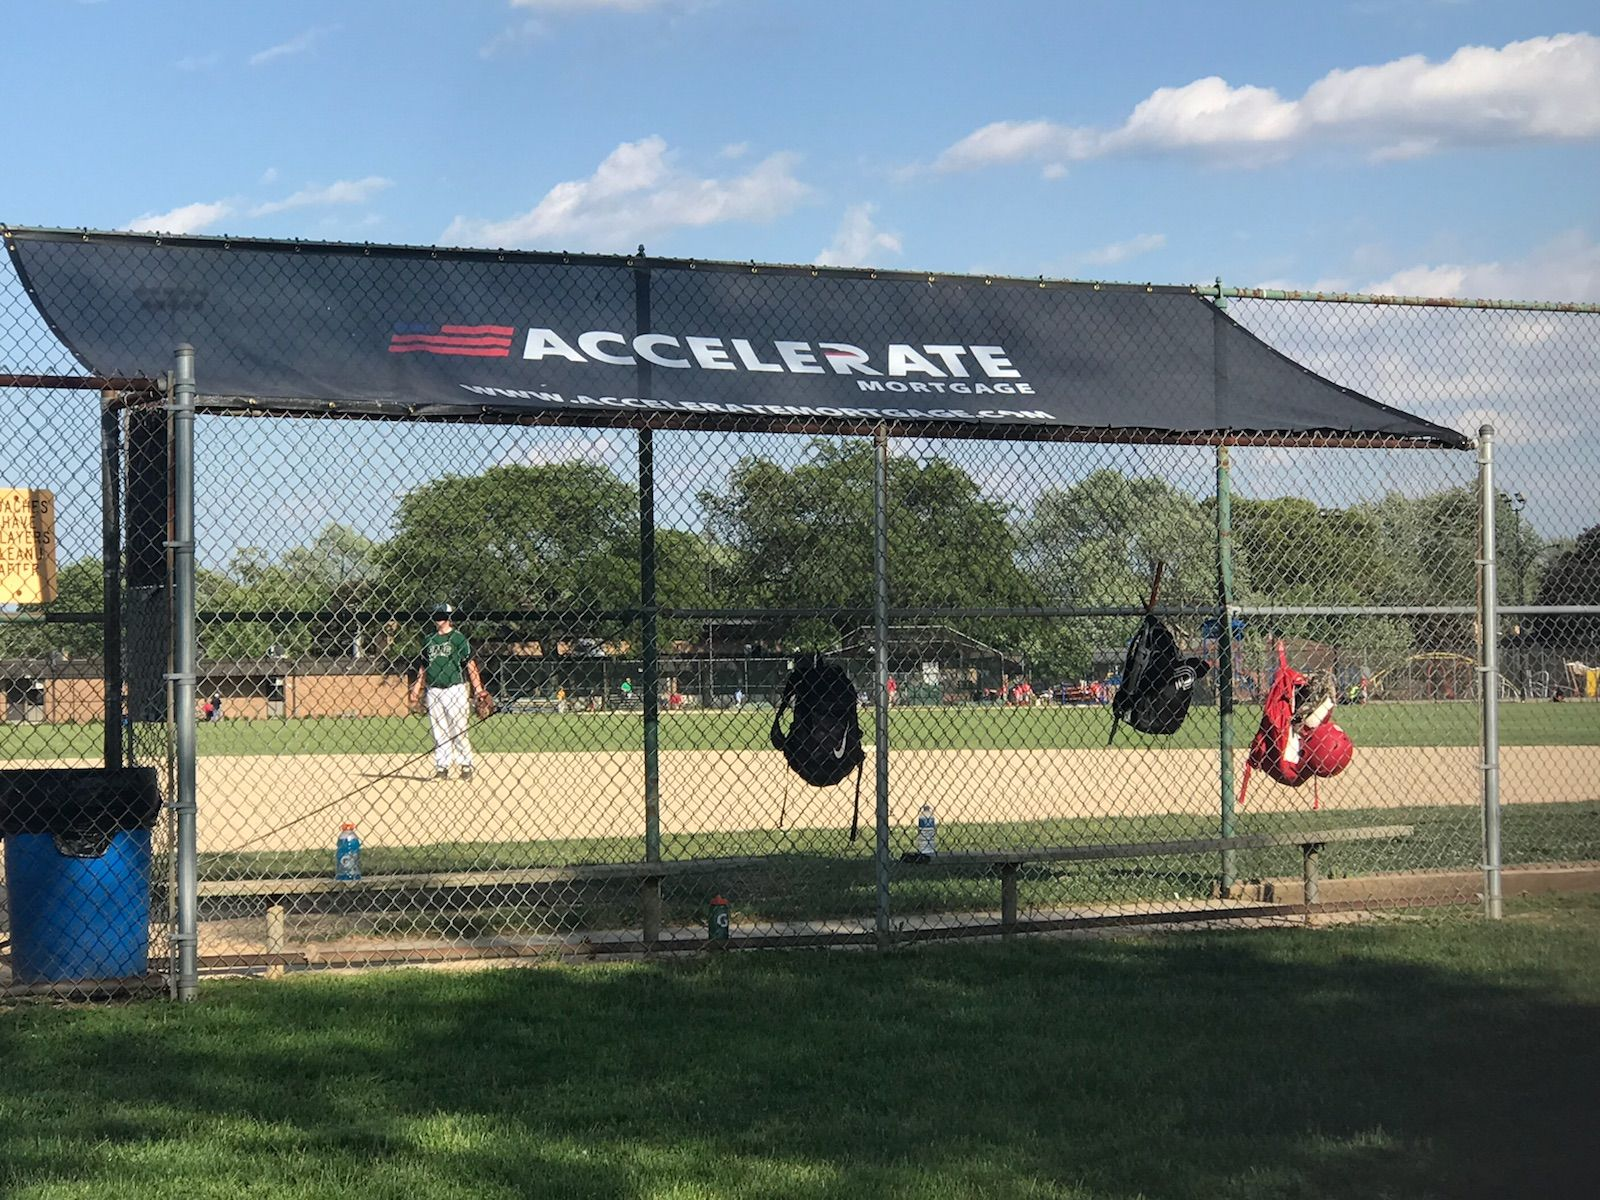 Dugout Sun Shade Great For Weekend Tournament Fields Bottom Will Be Black Only The Top Can Be Any Color As We Offer Full Color Graphi Dugout Sun Shade Shades